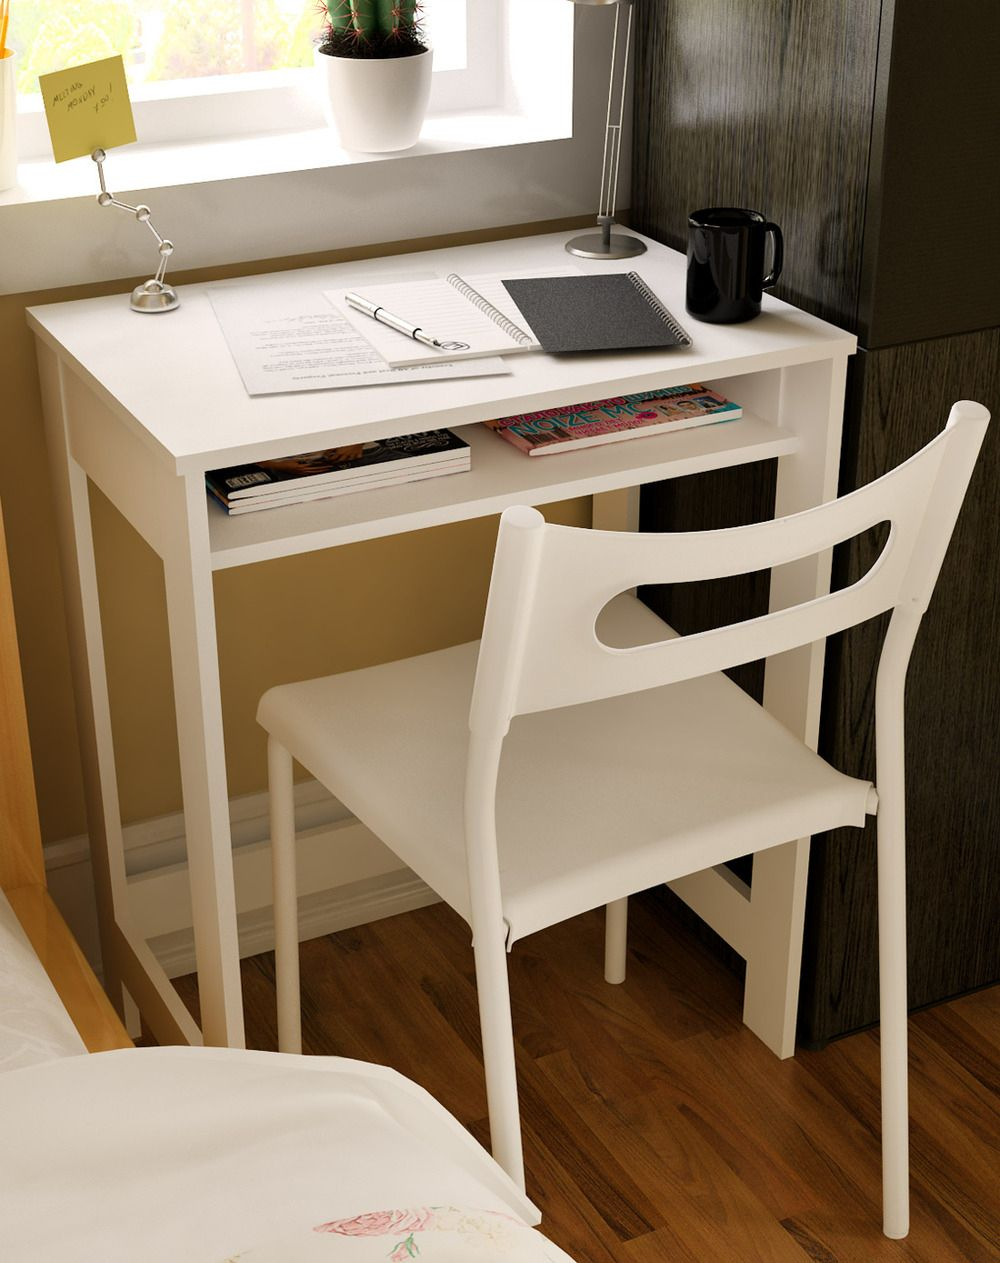 Small Student Desk Ikea Elegant Living Room Furniture Sets Check More At Http Www Gameintown Co Small Study Desk Desks For Small Spaces Study Table Designs